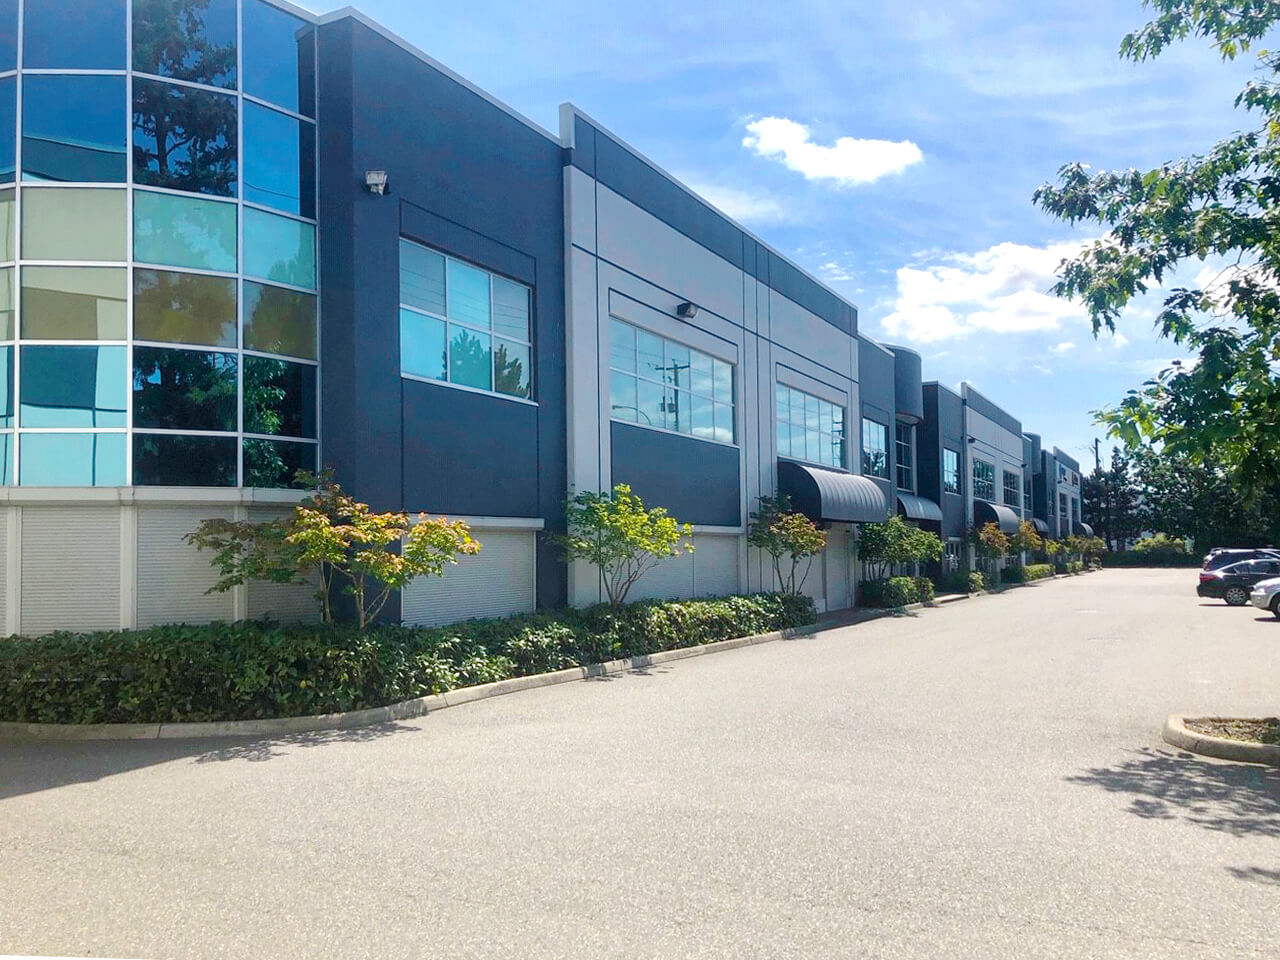 Lee & Associates Vancouver Negotiates Lease of a 27,735 SF Warehouse/Office Facility in Port Kells